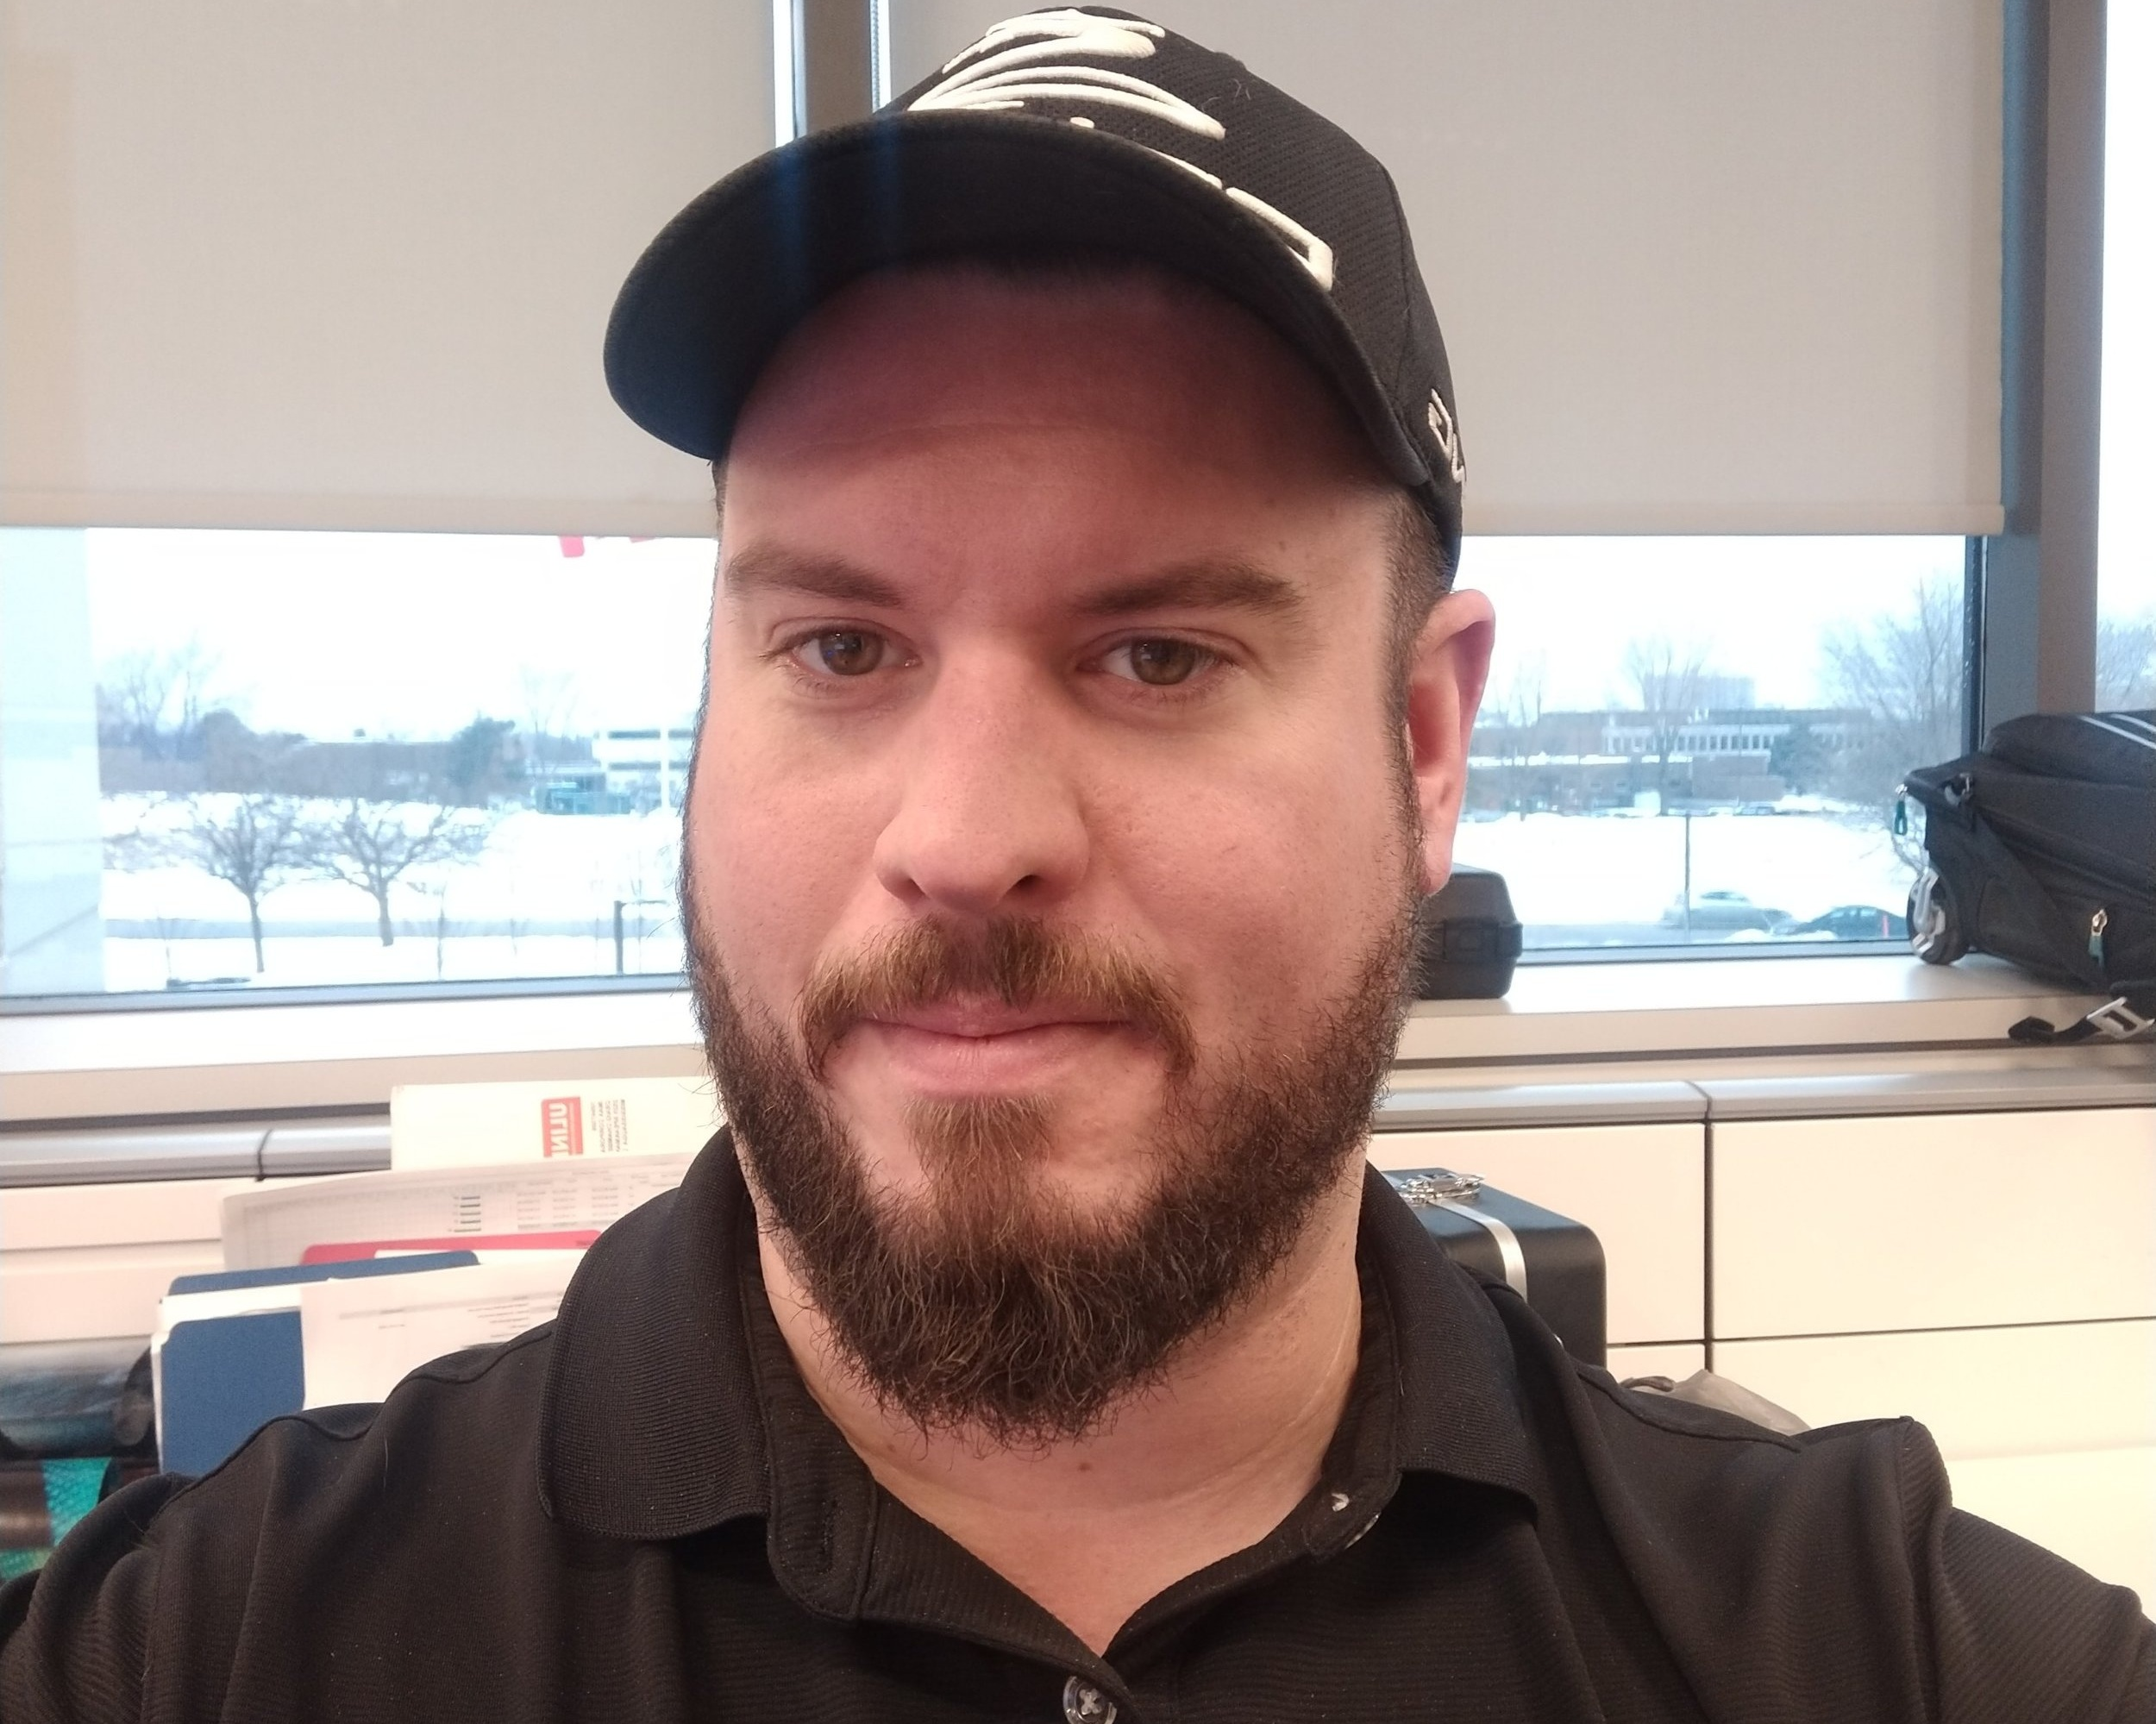 Craig Chambers - I have a cool job installing IMAX projection systems all over the world. I studied mechanical engineering at U of Toronto. I have been involved with First Robotics for 18 years (more than half of my life!). I have an awesome dog named Sophie, I will soon be a dad and my favorite non robots thing to do is golf!